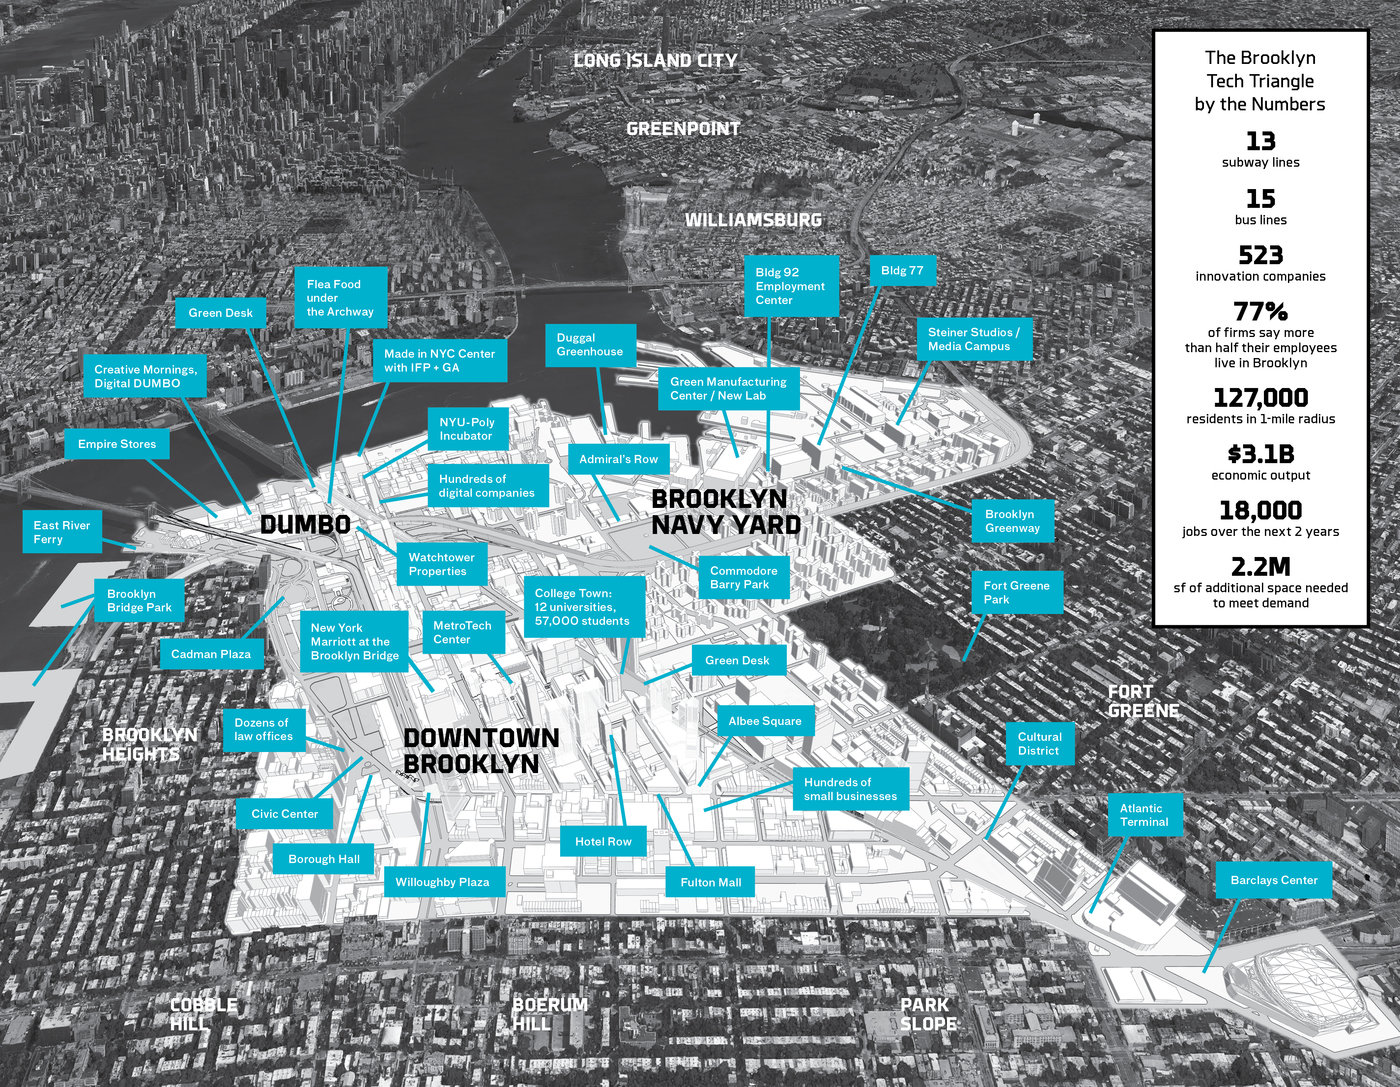 Brooklyn Tech Triangle Plan